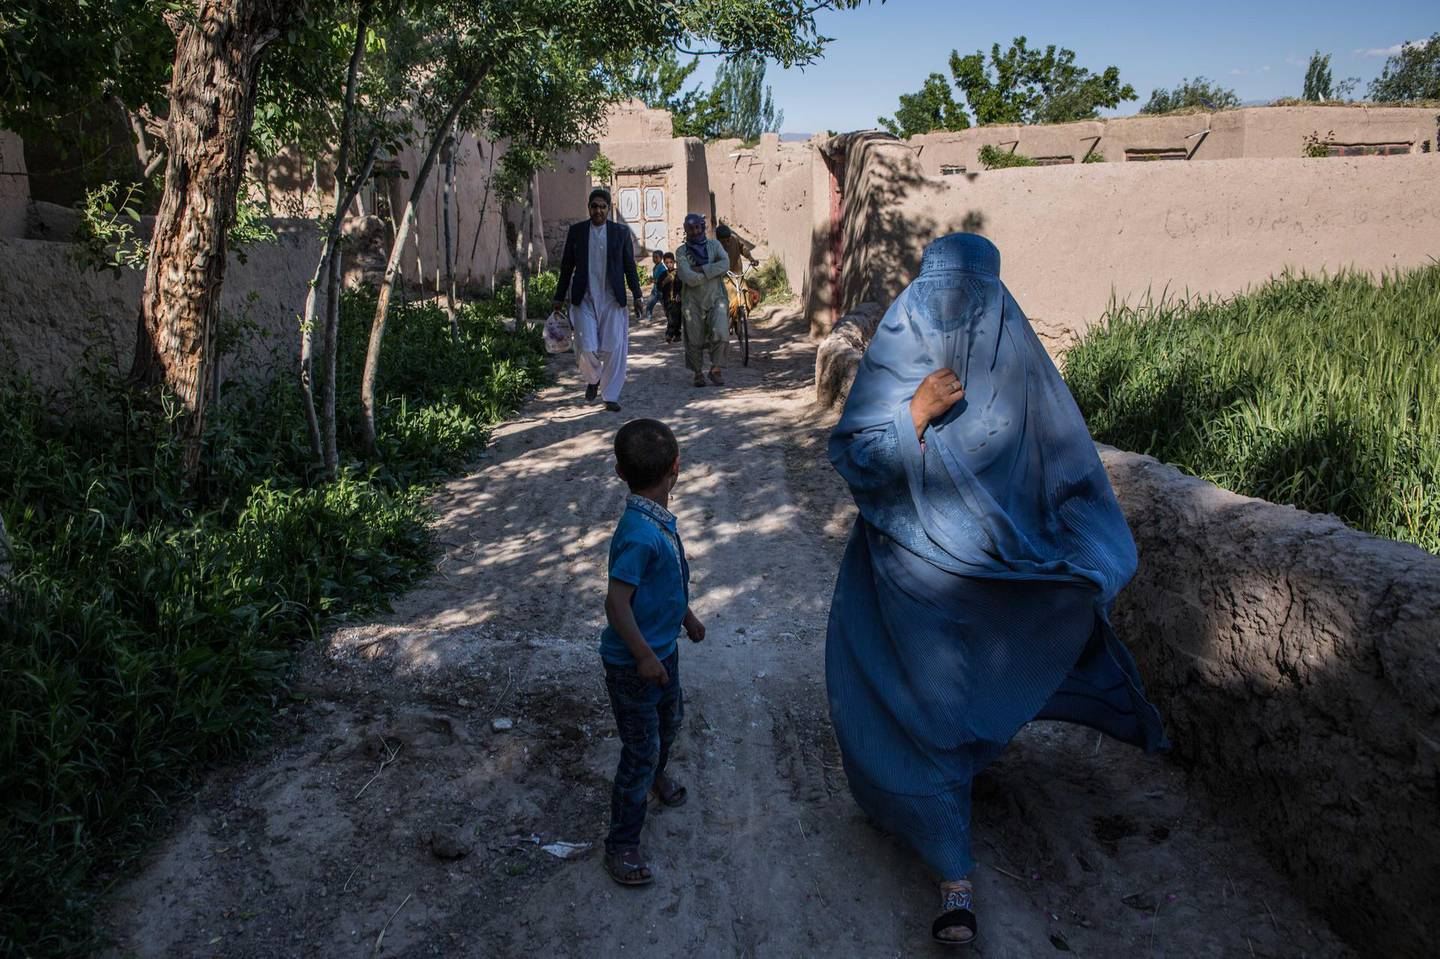 In rural Herat, many people opt for 'alternative justice' - in government areas this can mean seeking help from local elders and mullahs, while in Taliban areas, it means going to a Taliban court. This village, Sultan Khan, is in a government-held area. Stefanie Glinski for The National